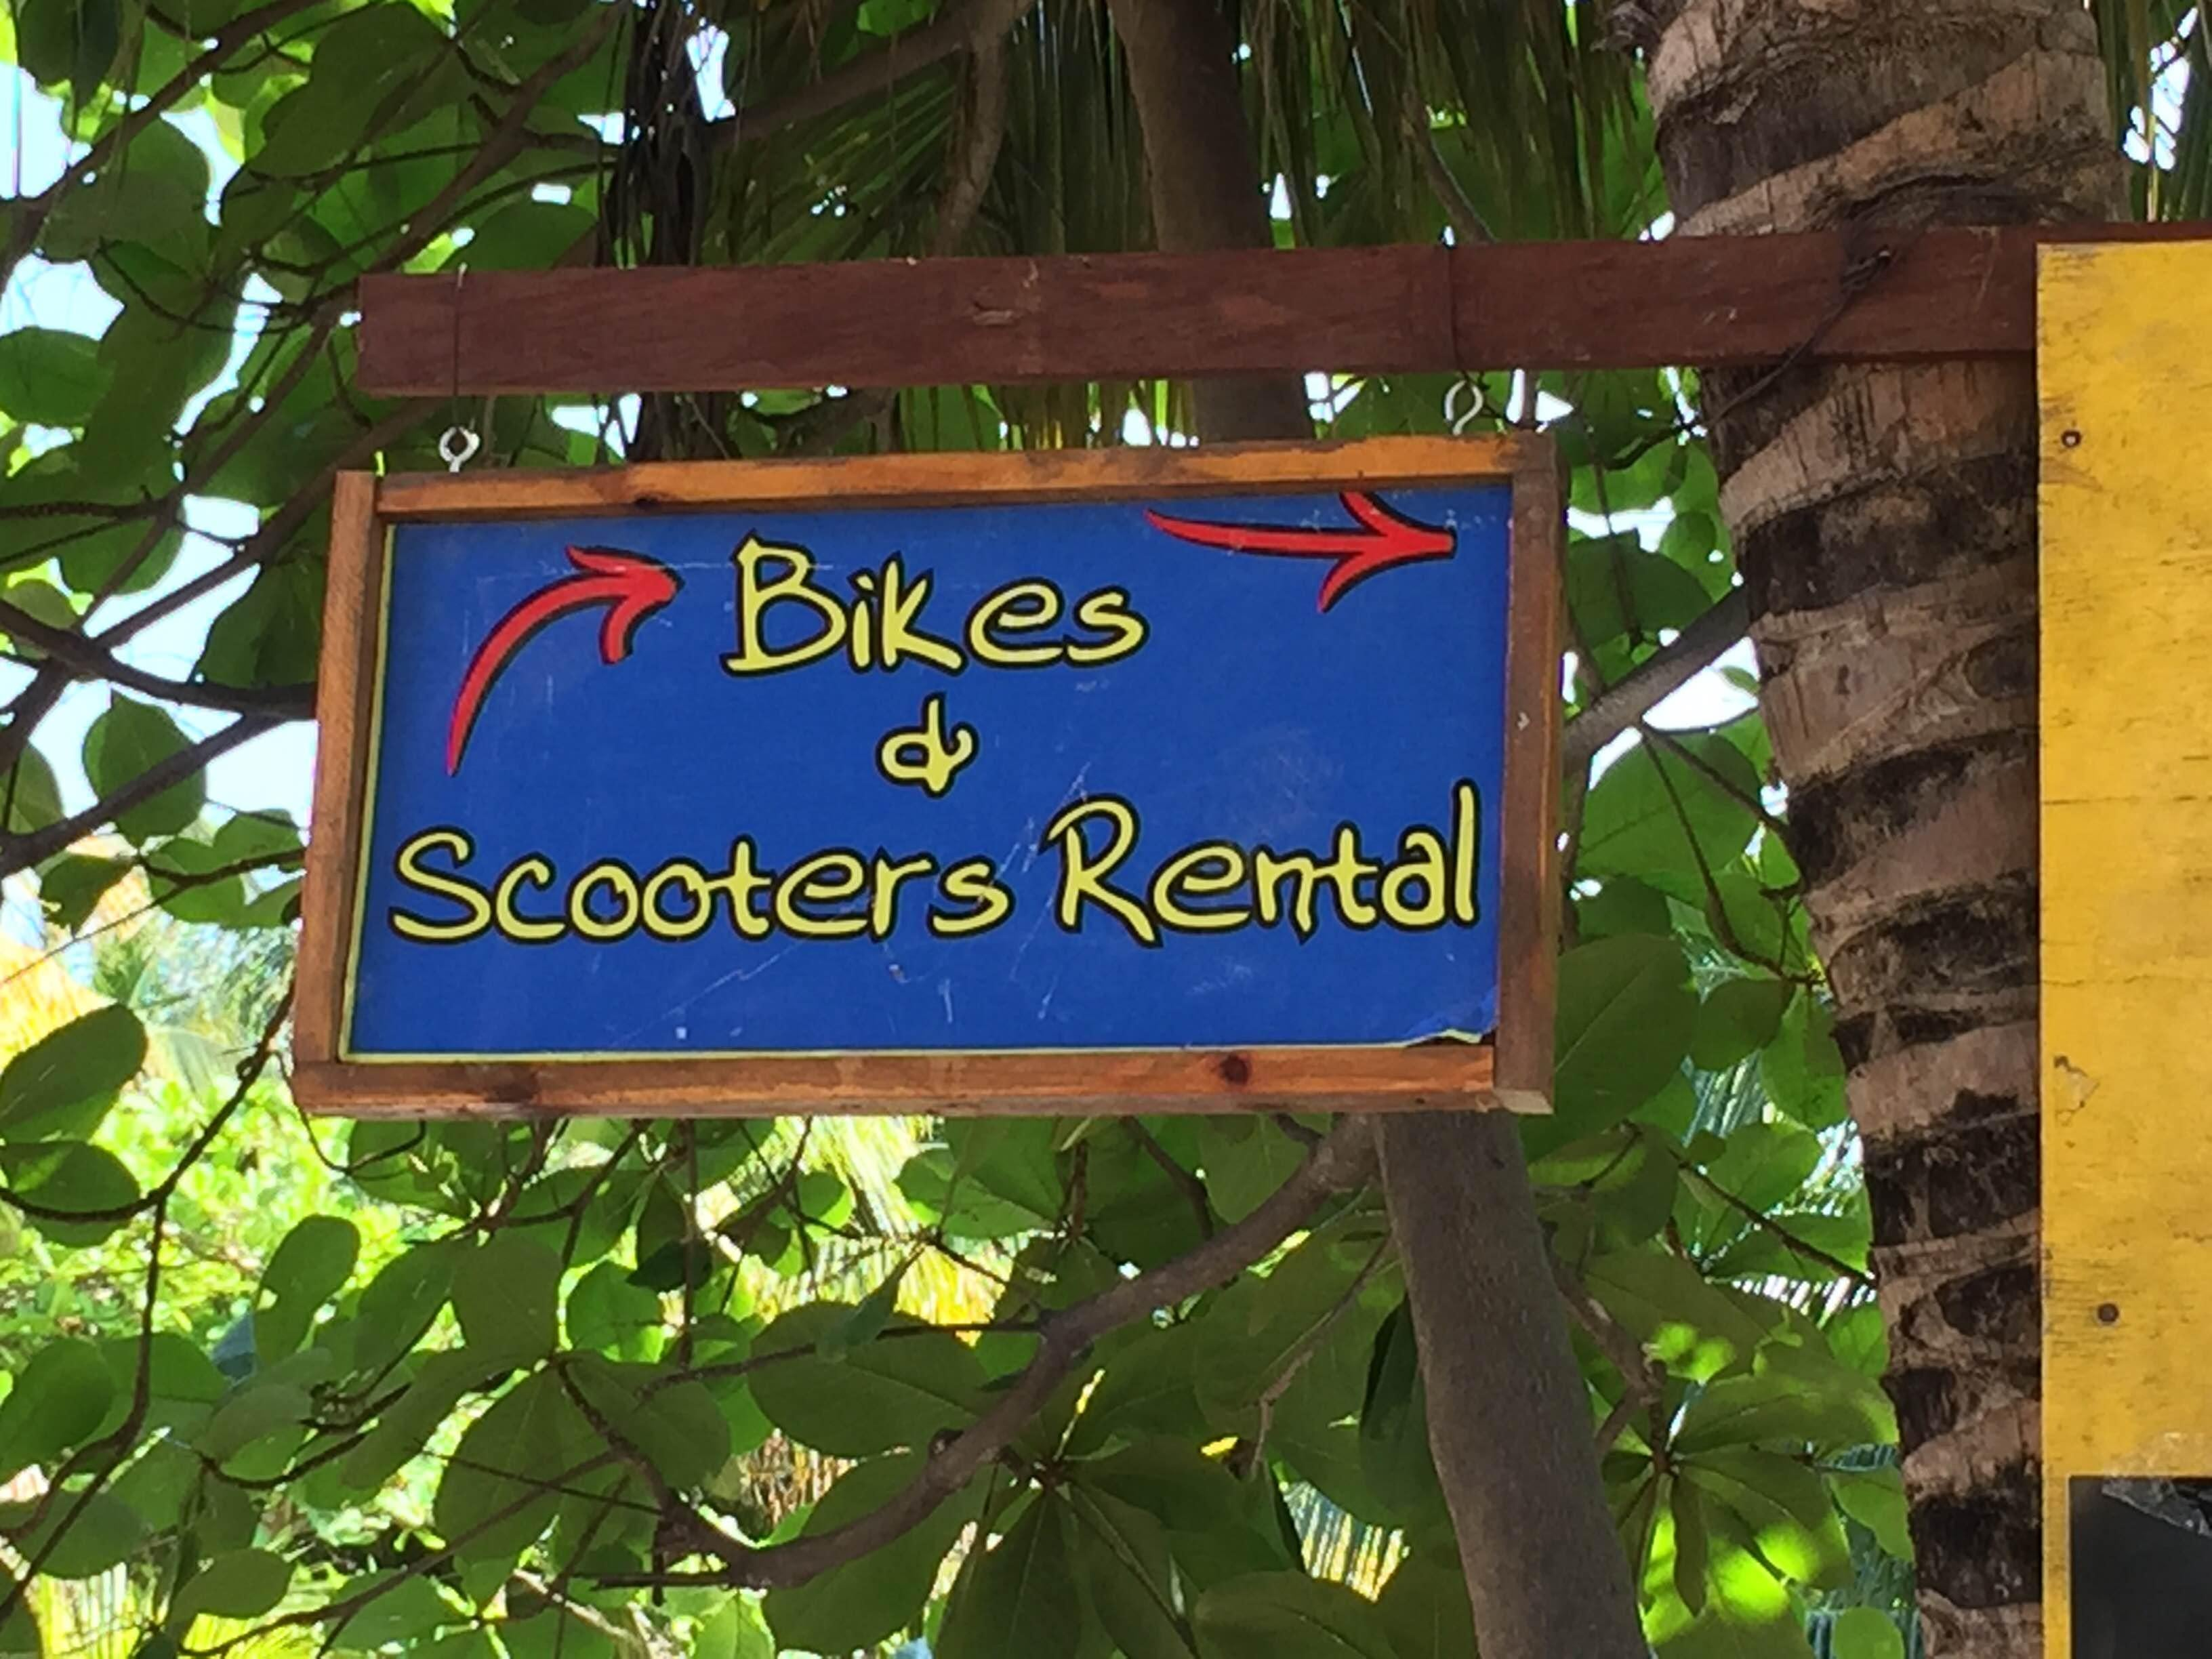 Bikes and scooters rental